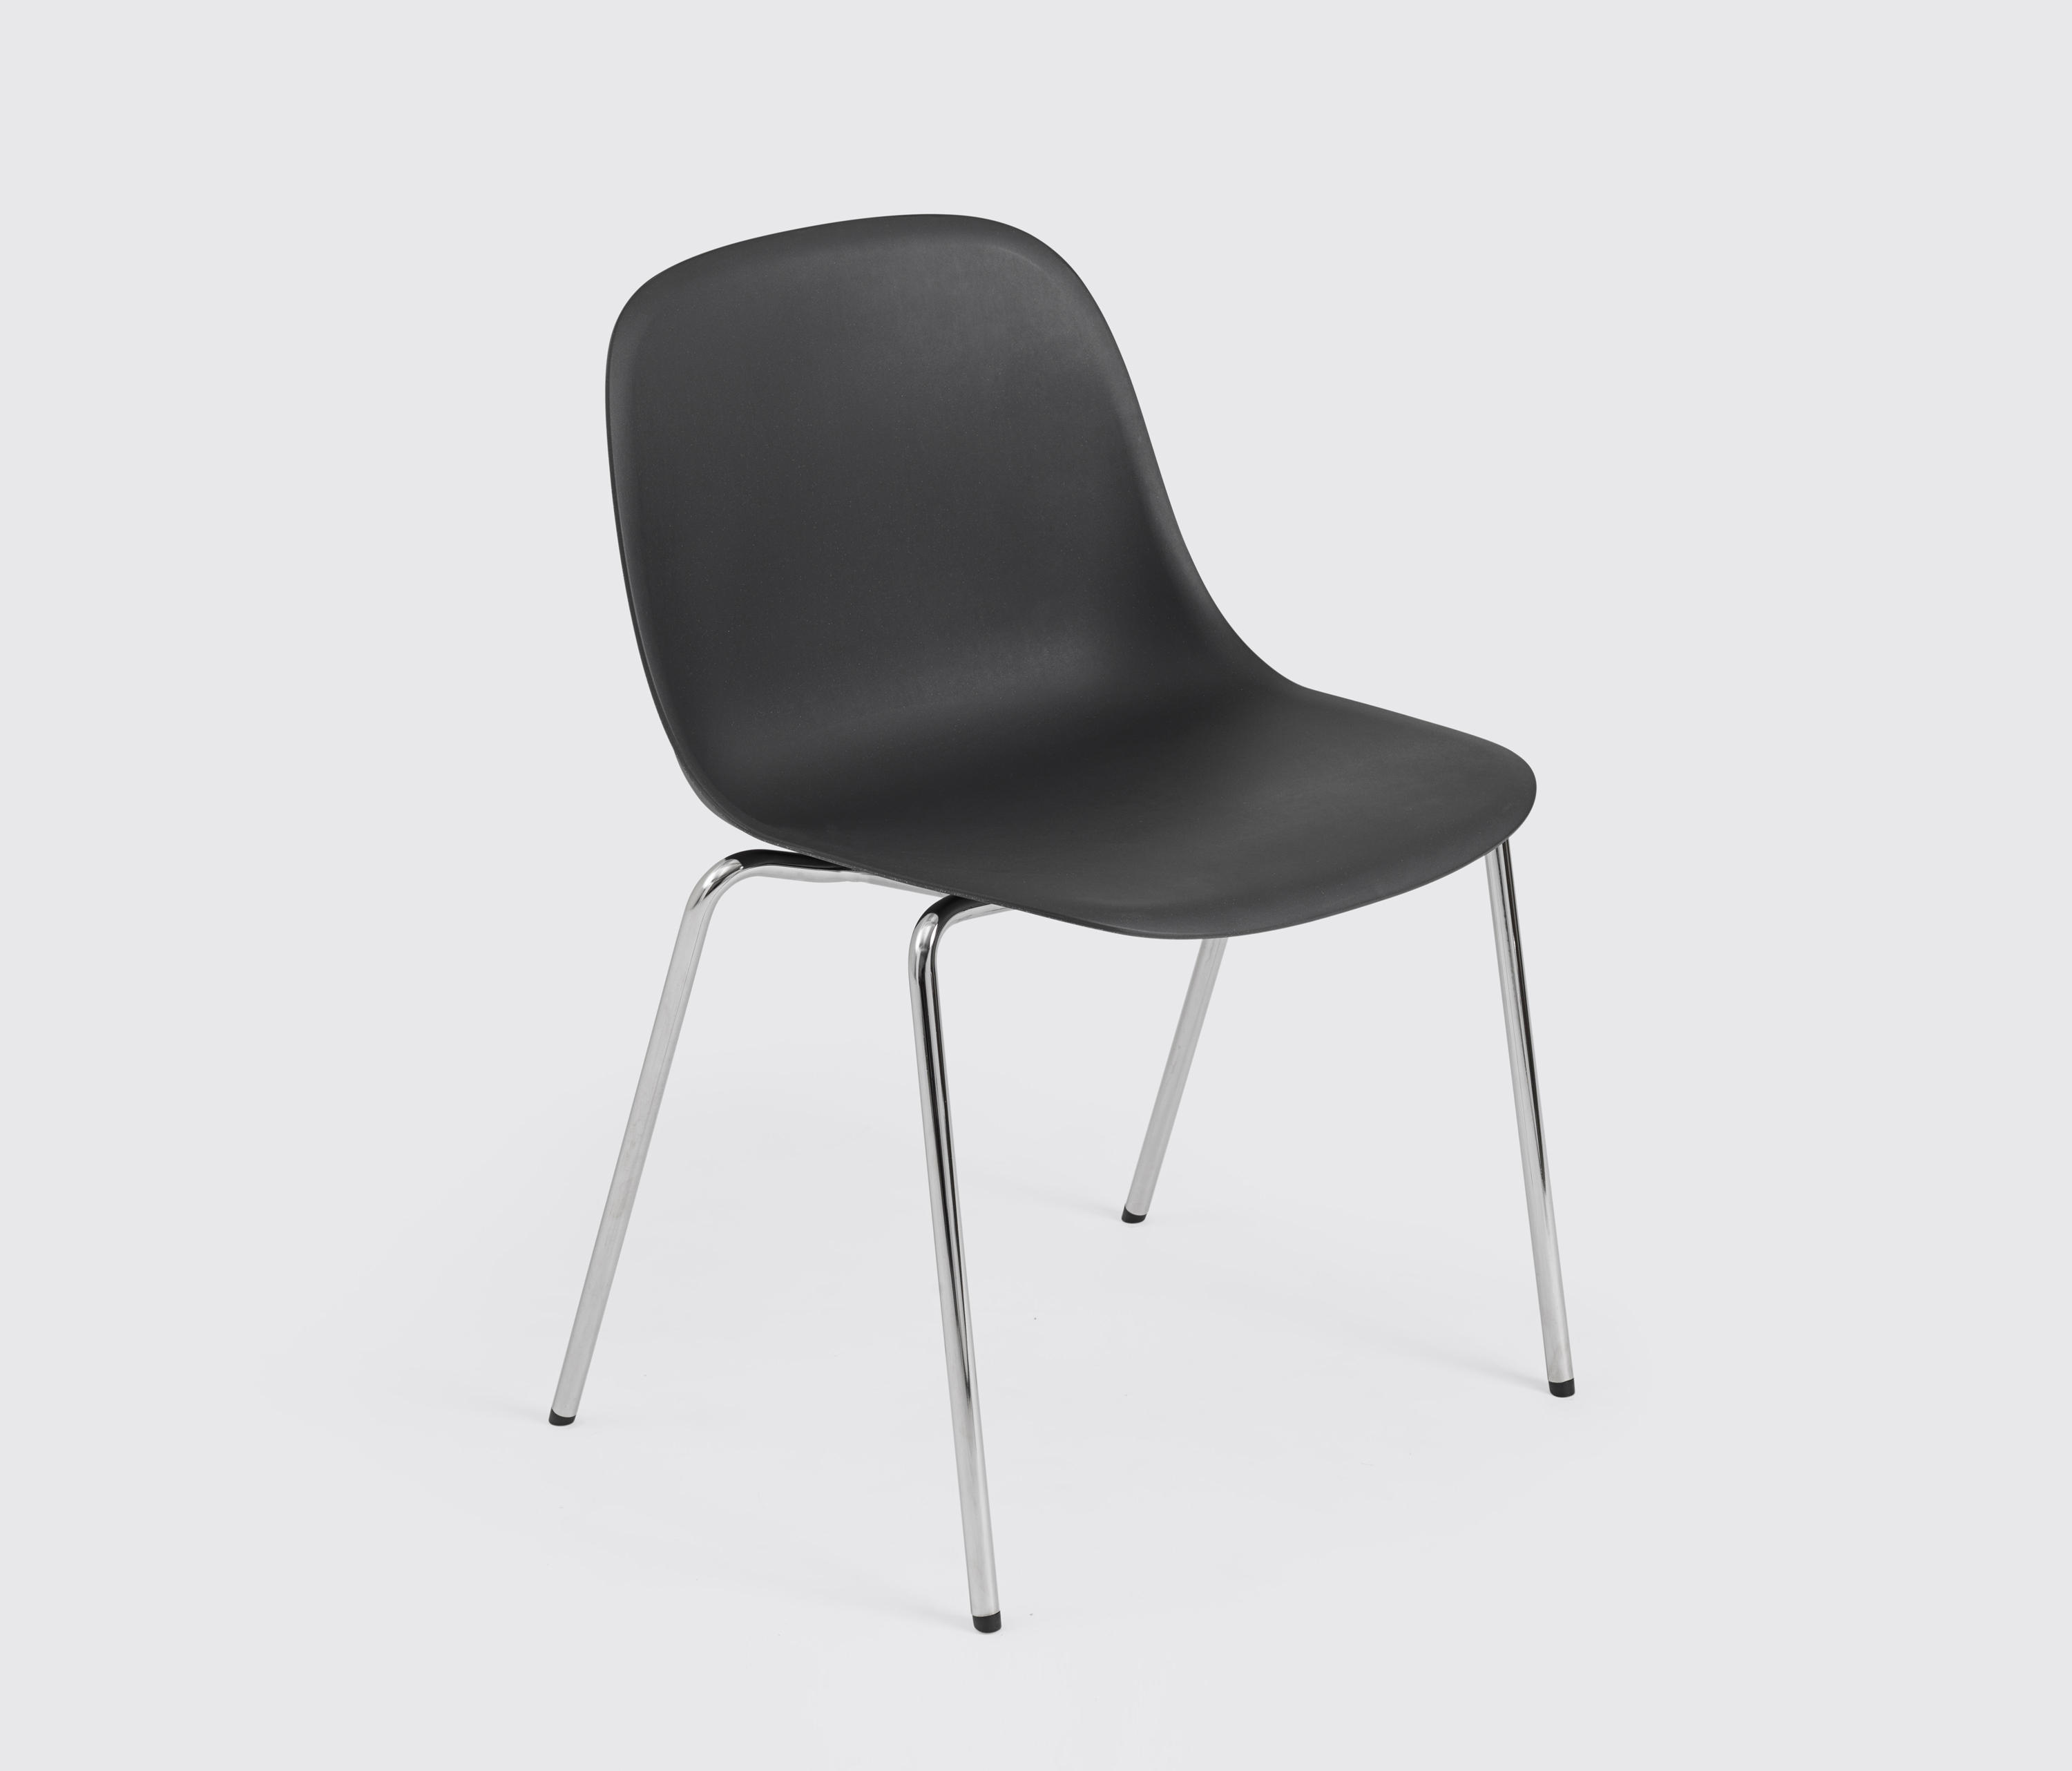 fiber side chair tube base stackable chairs from muuto. Black Bedroom Furniture Sets. Home Design Ideas